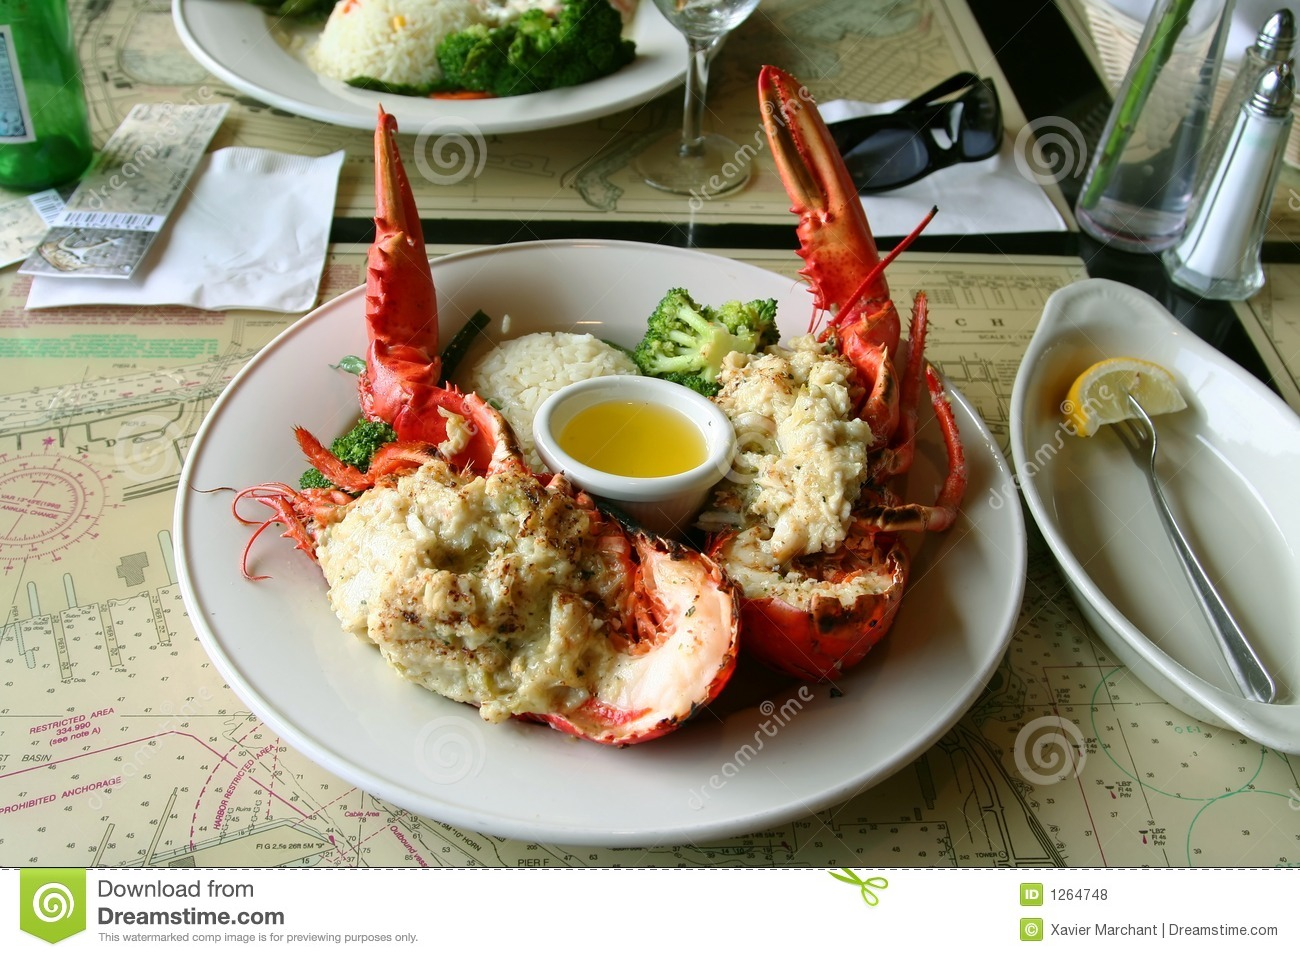 Grilled Lobster Royalty Free Stock Photos - Image: 1264748